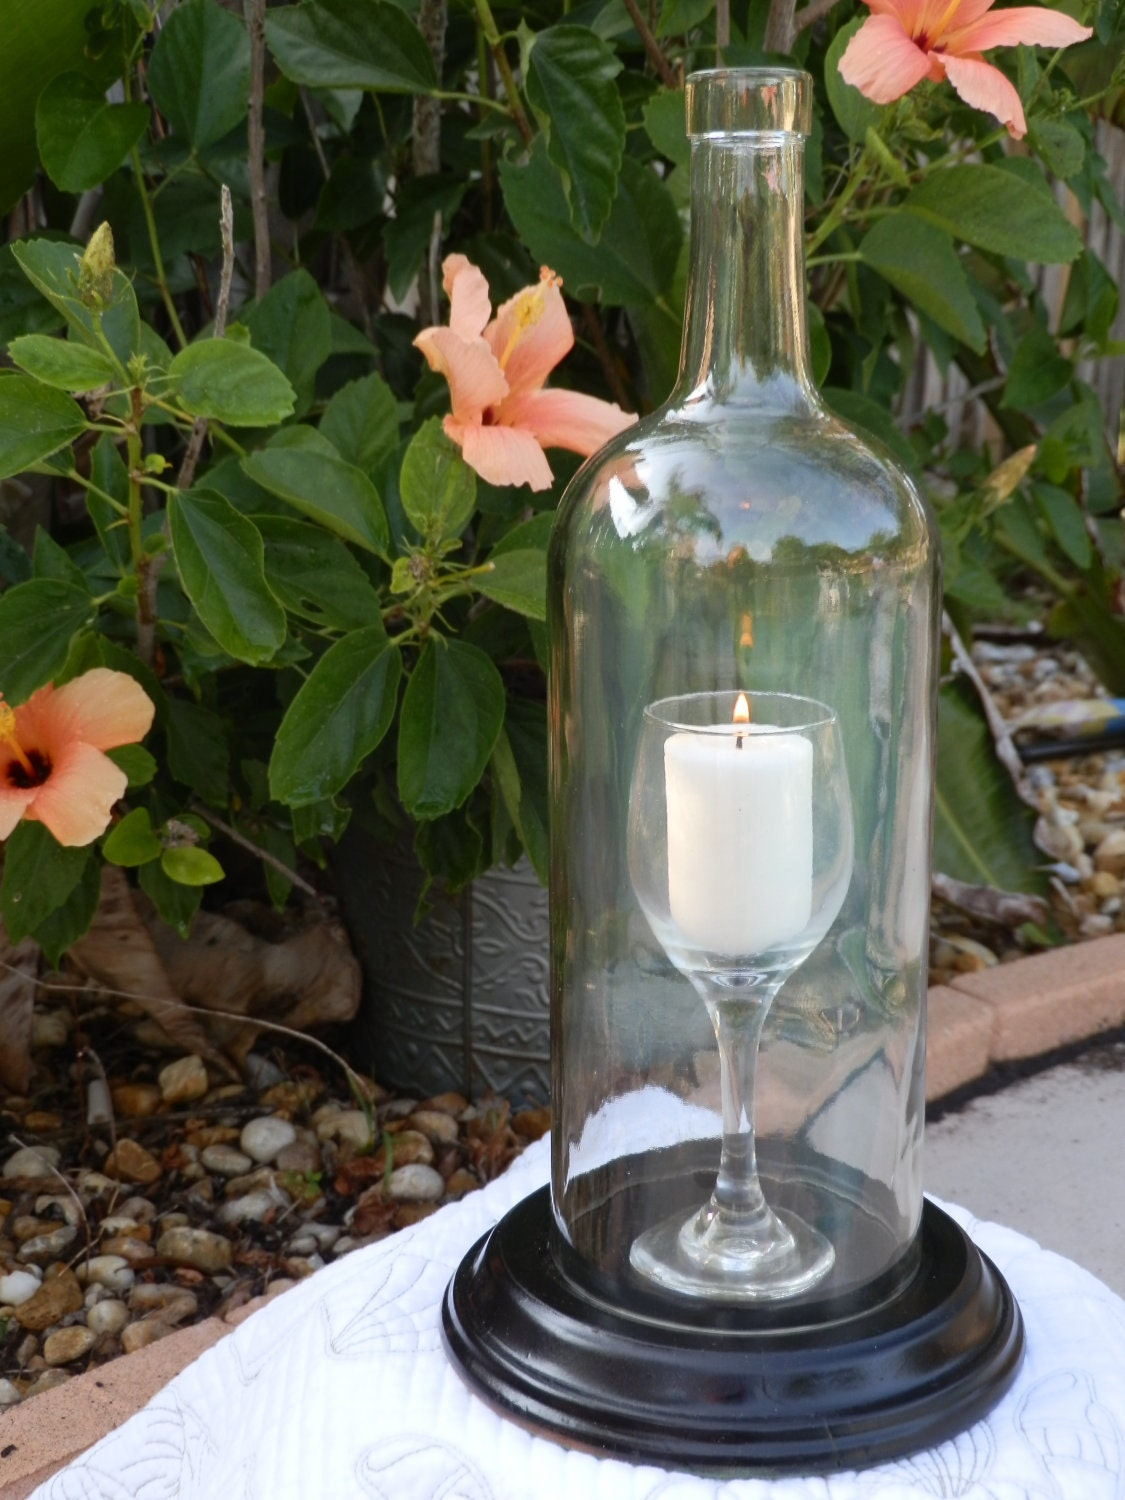 Special wine glass in a bottle candle holder by bomolutra